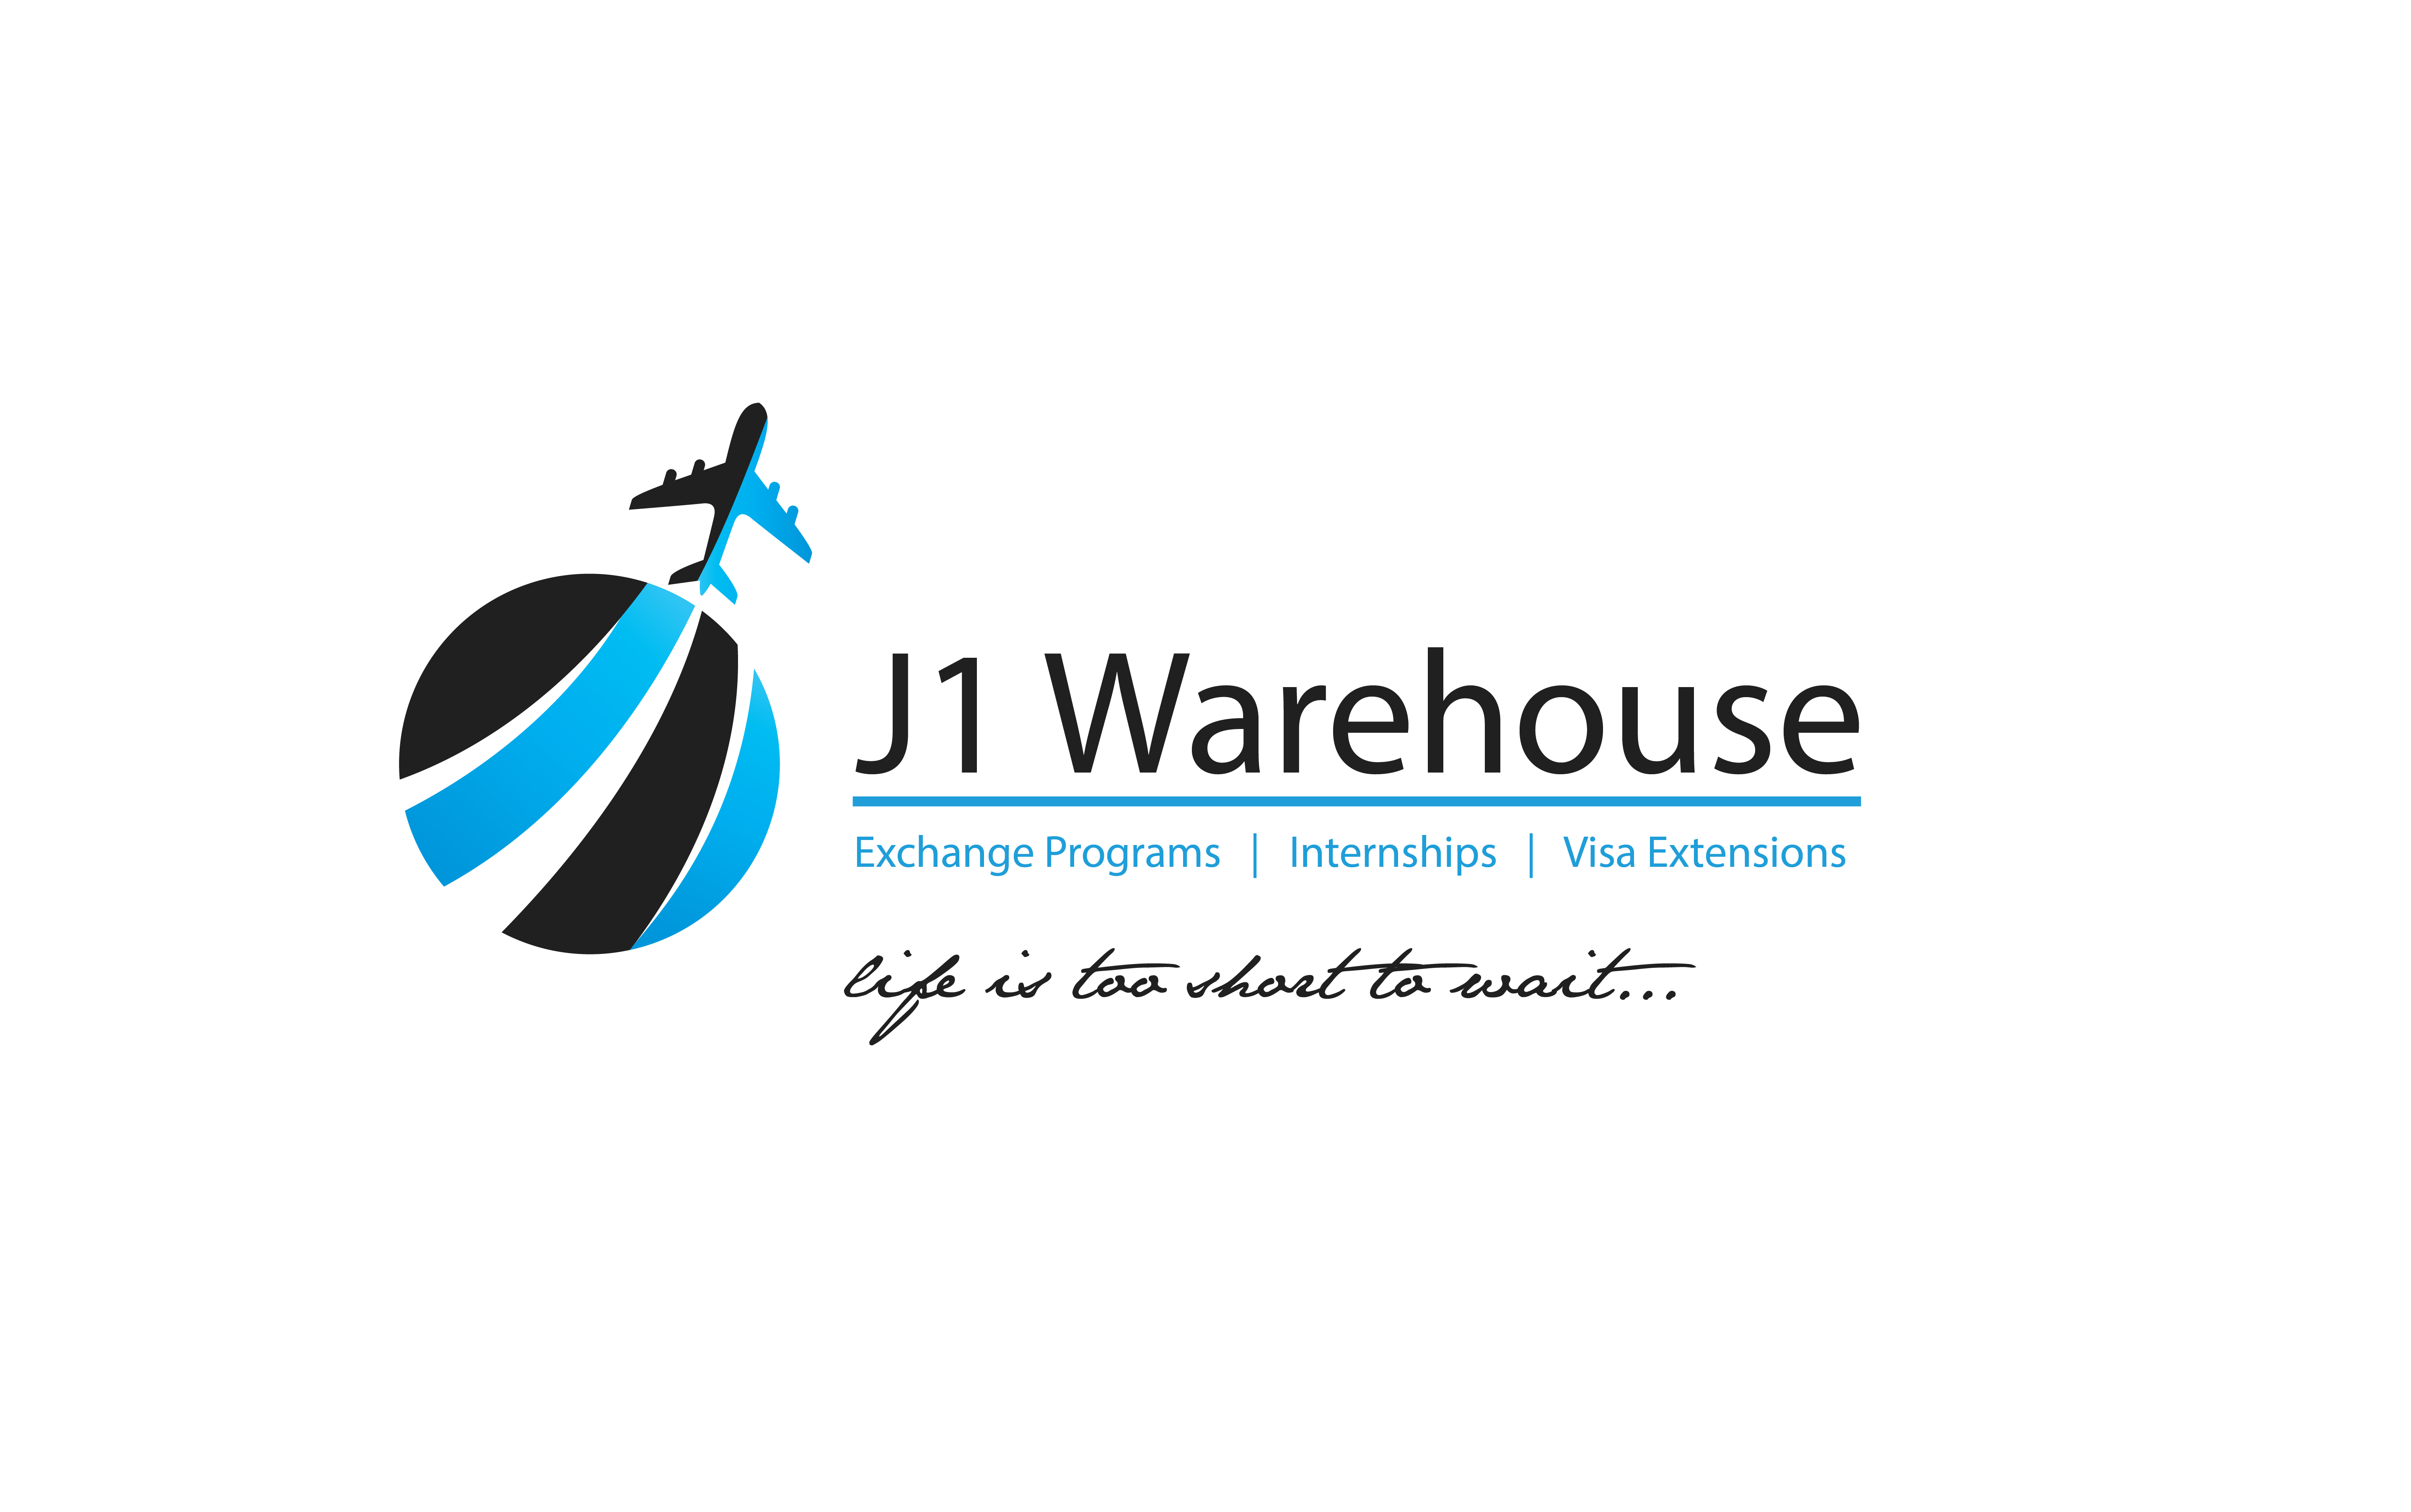 J1 Warehouse Logo